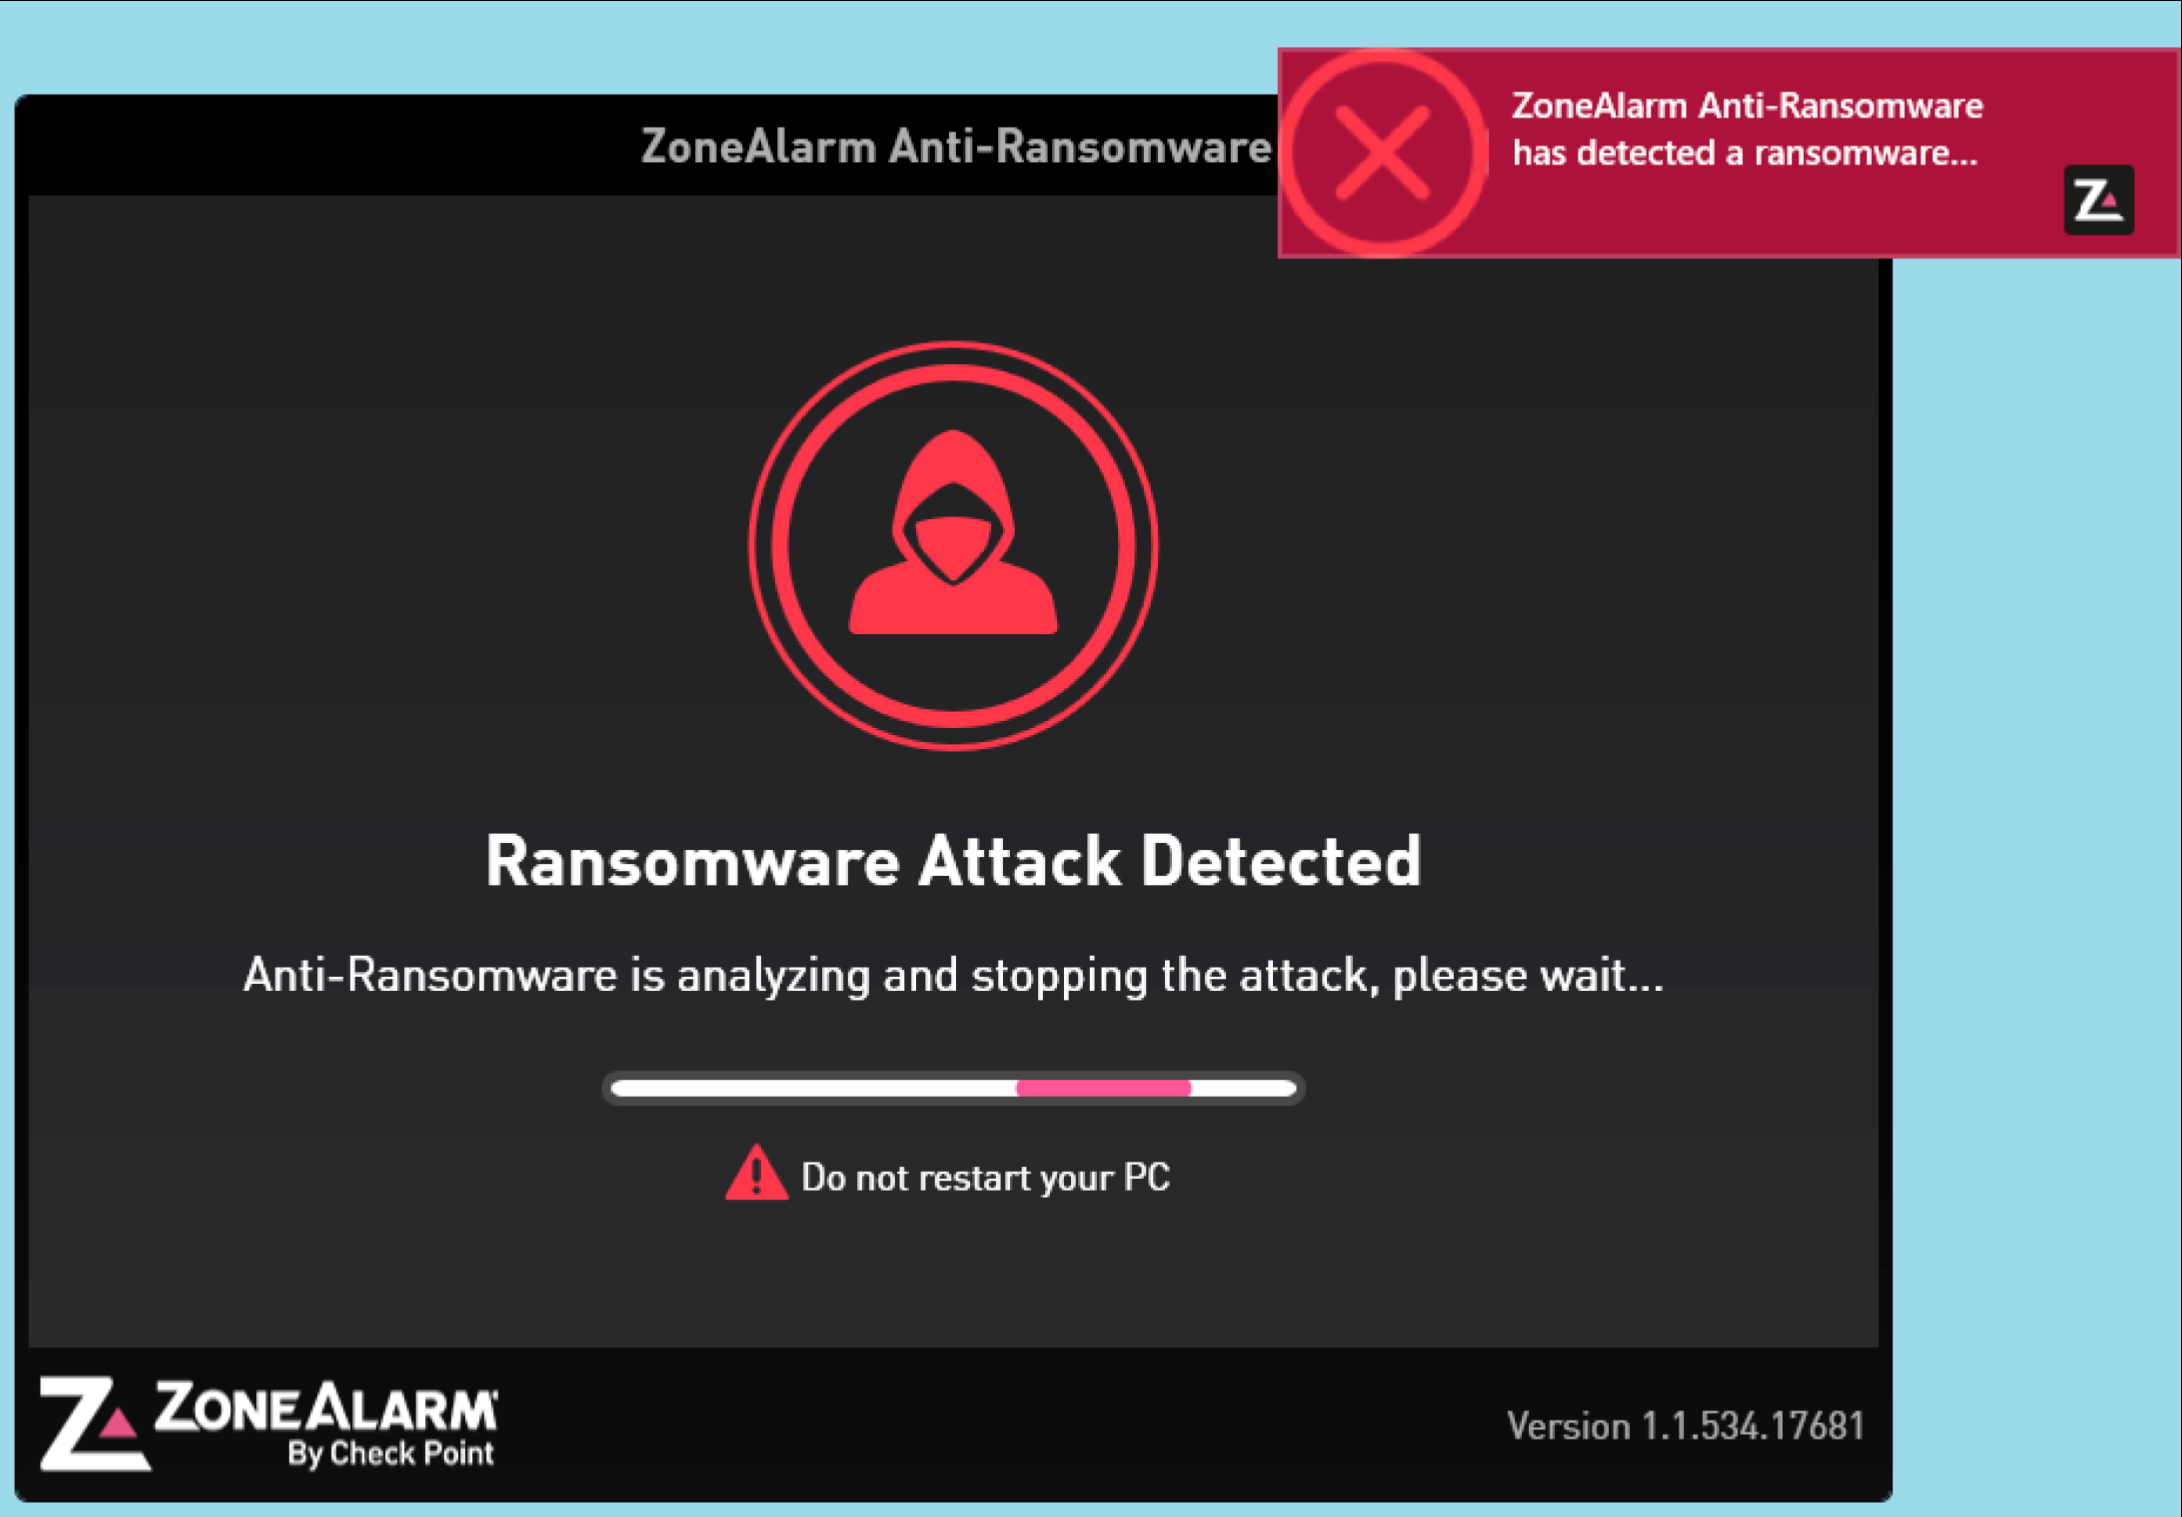 The ZoneAlarm Anti-Ransomware software.